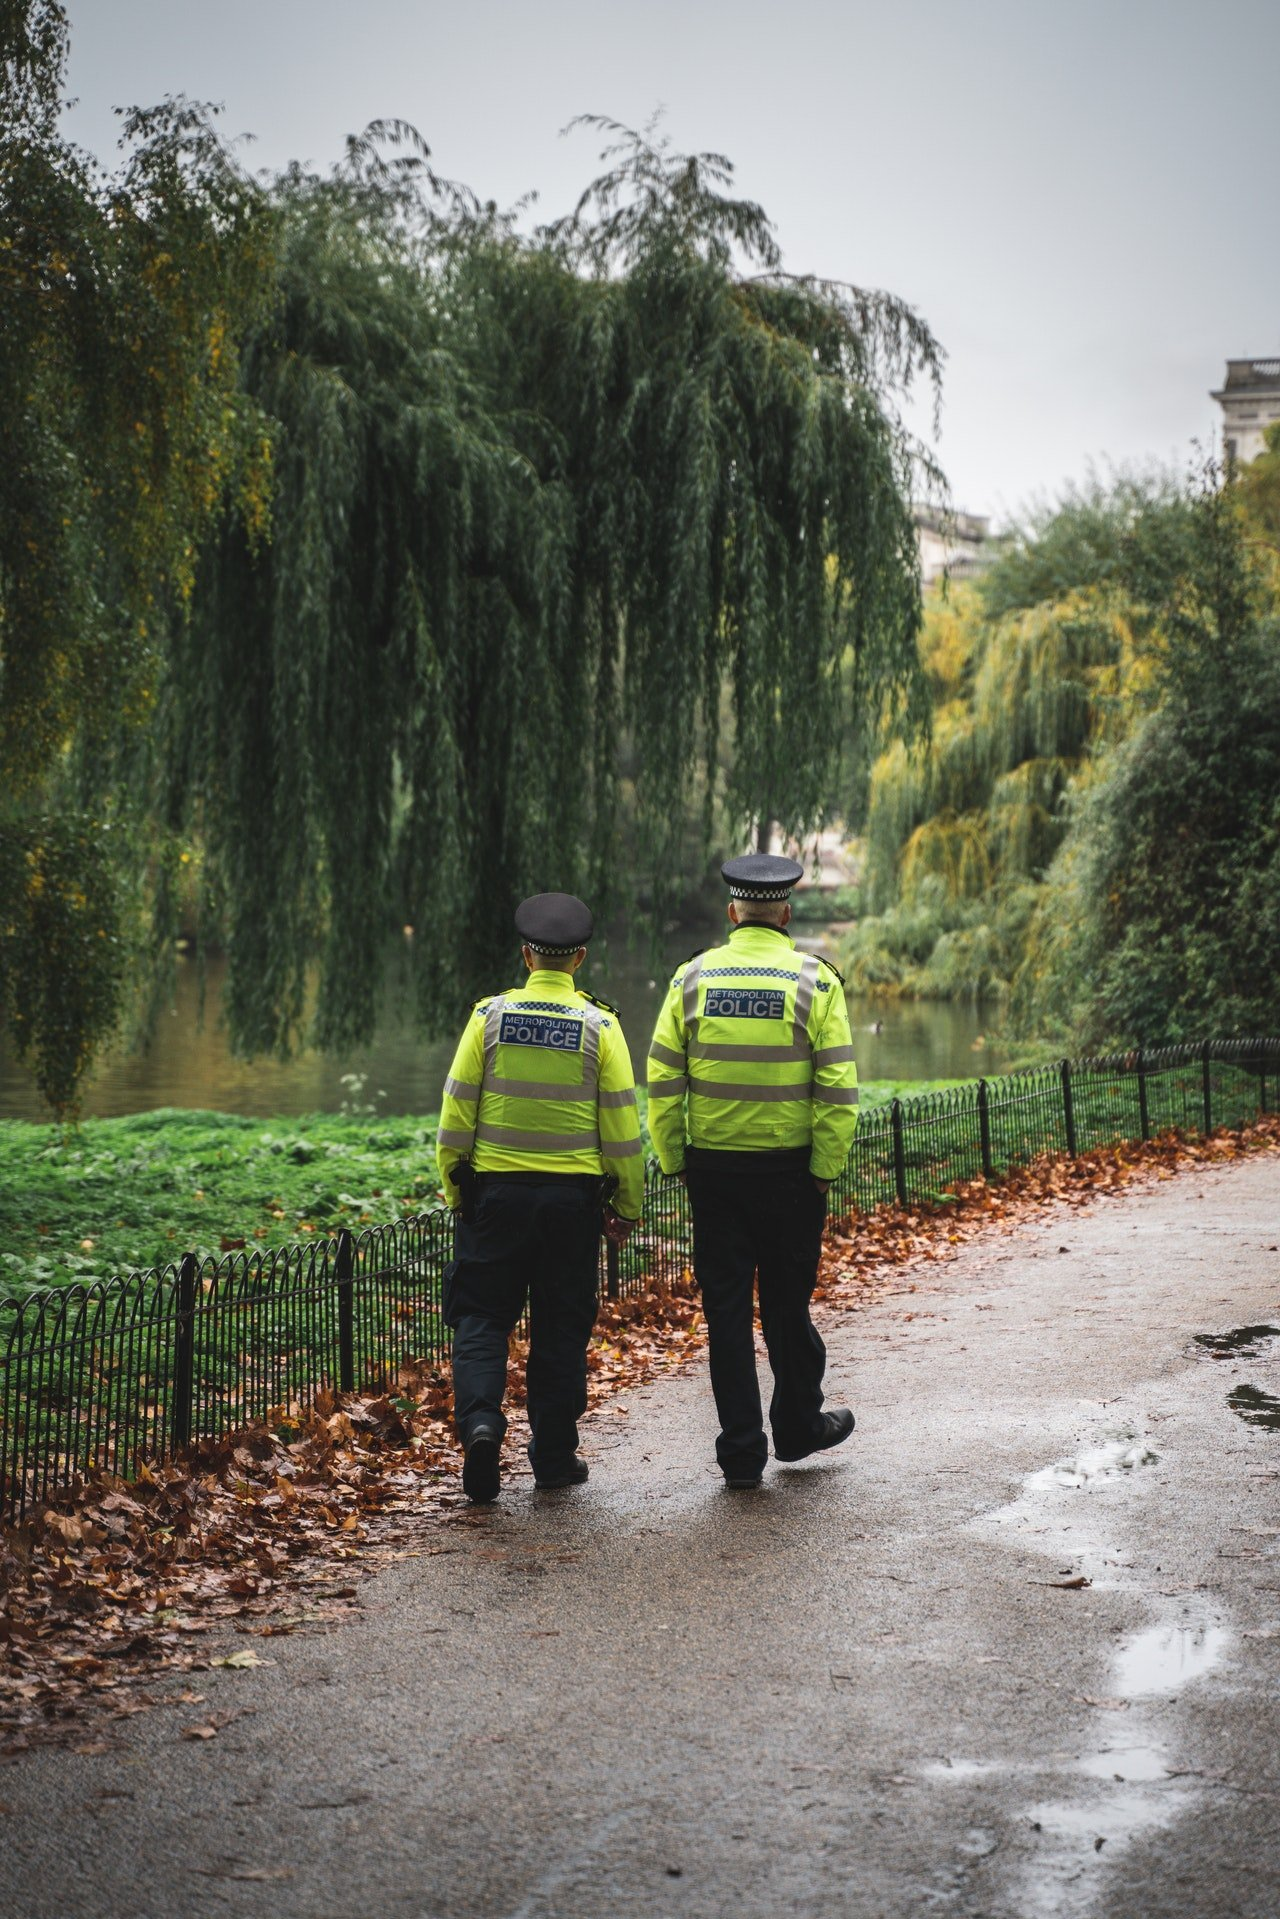 Photo of two police officer walking down the road | Photo: Pexels